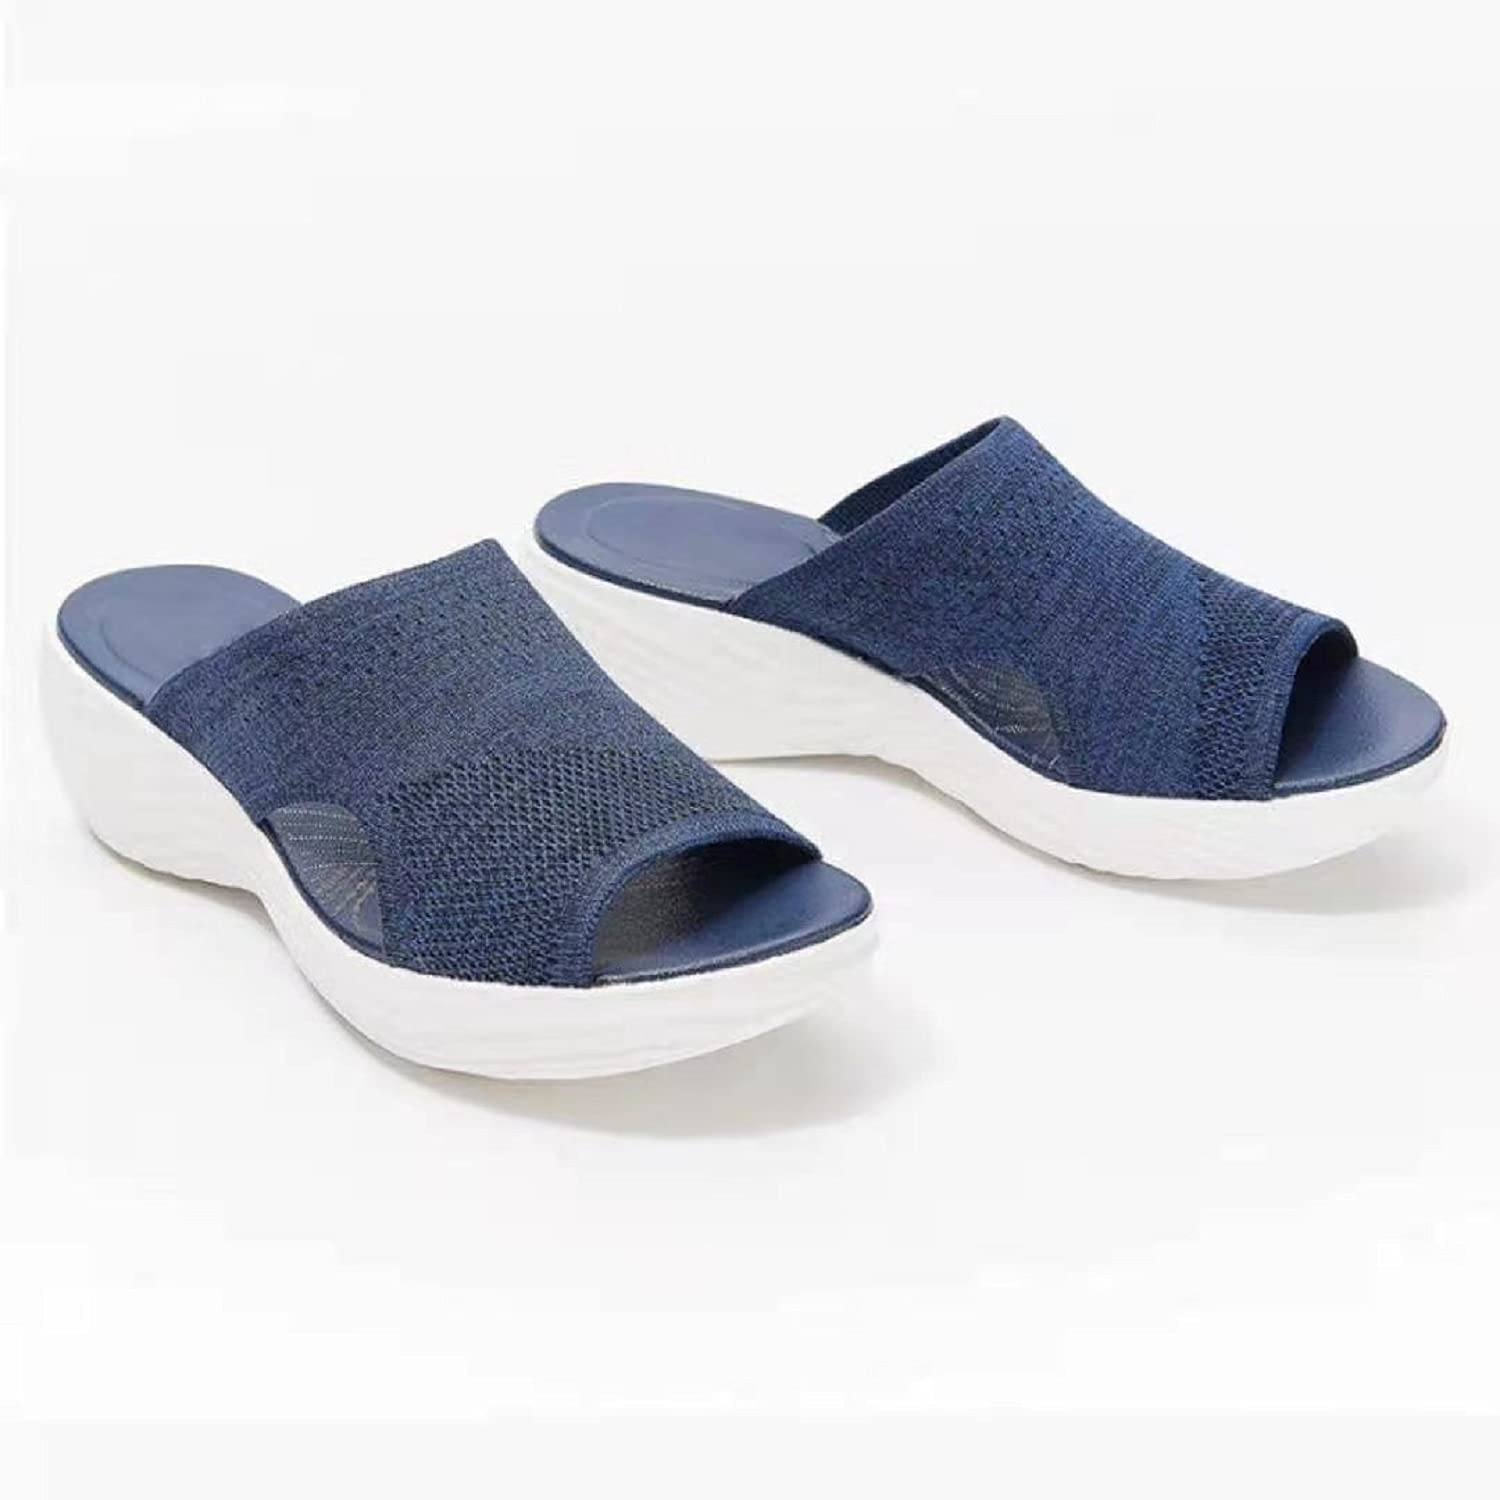 LELEBEAR 2021 Upgraded - Stretch Orthotic Slide Sandals for Home Indoor Outdoor, Flat Heel Casual Mesh Upper Breathable Women's Summer Beach Shoes (Blue,37)